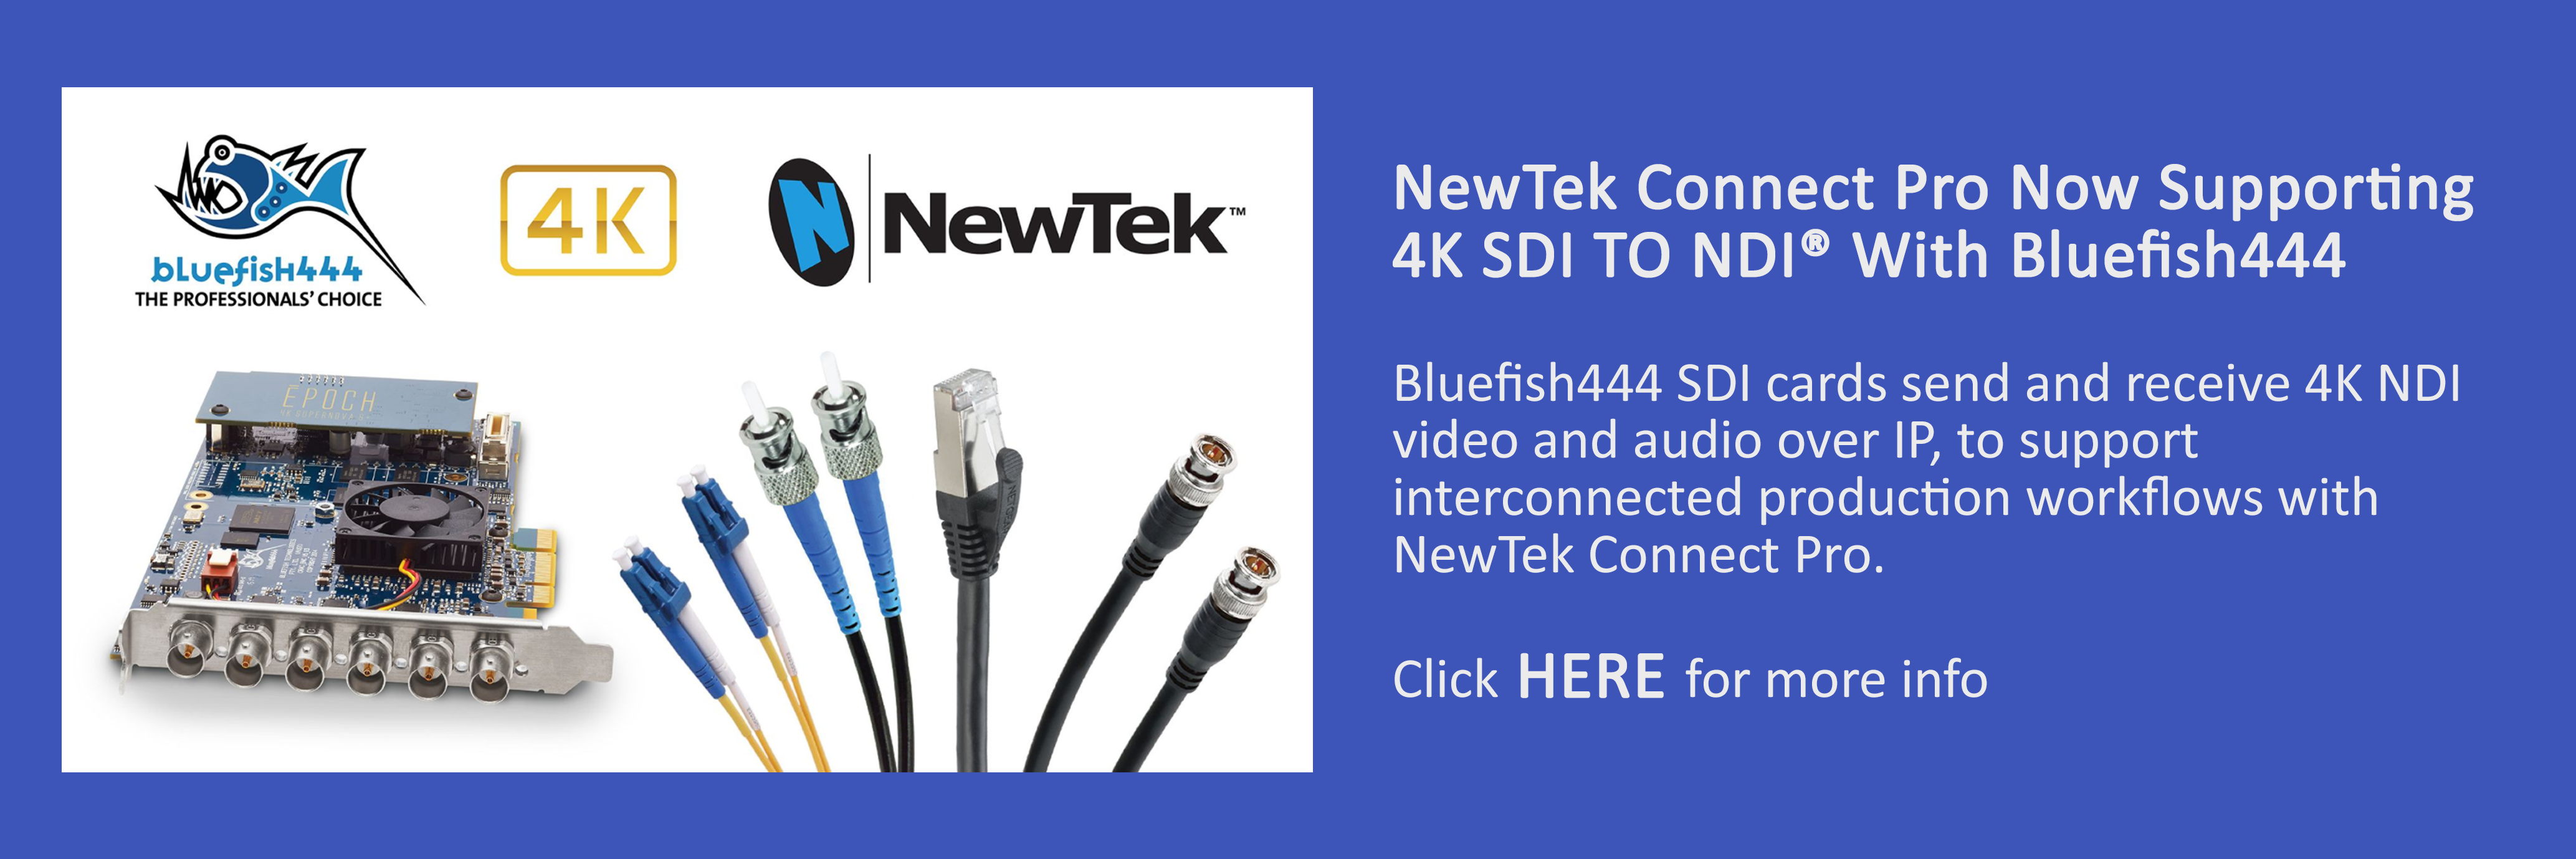 Bluefish444_What To See At IBC 2017_NEWTEK CONNECT PRO NOW SUPPORTING 4K SDI TO NDI® WITH BLUEFISH444